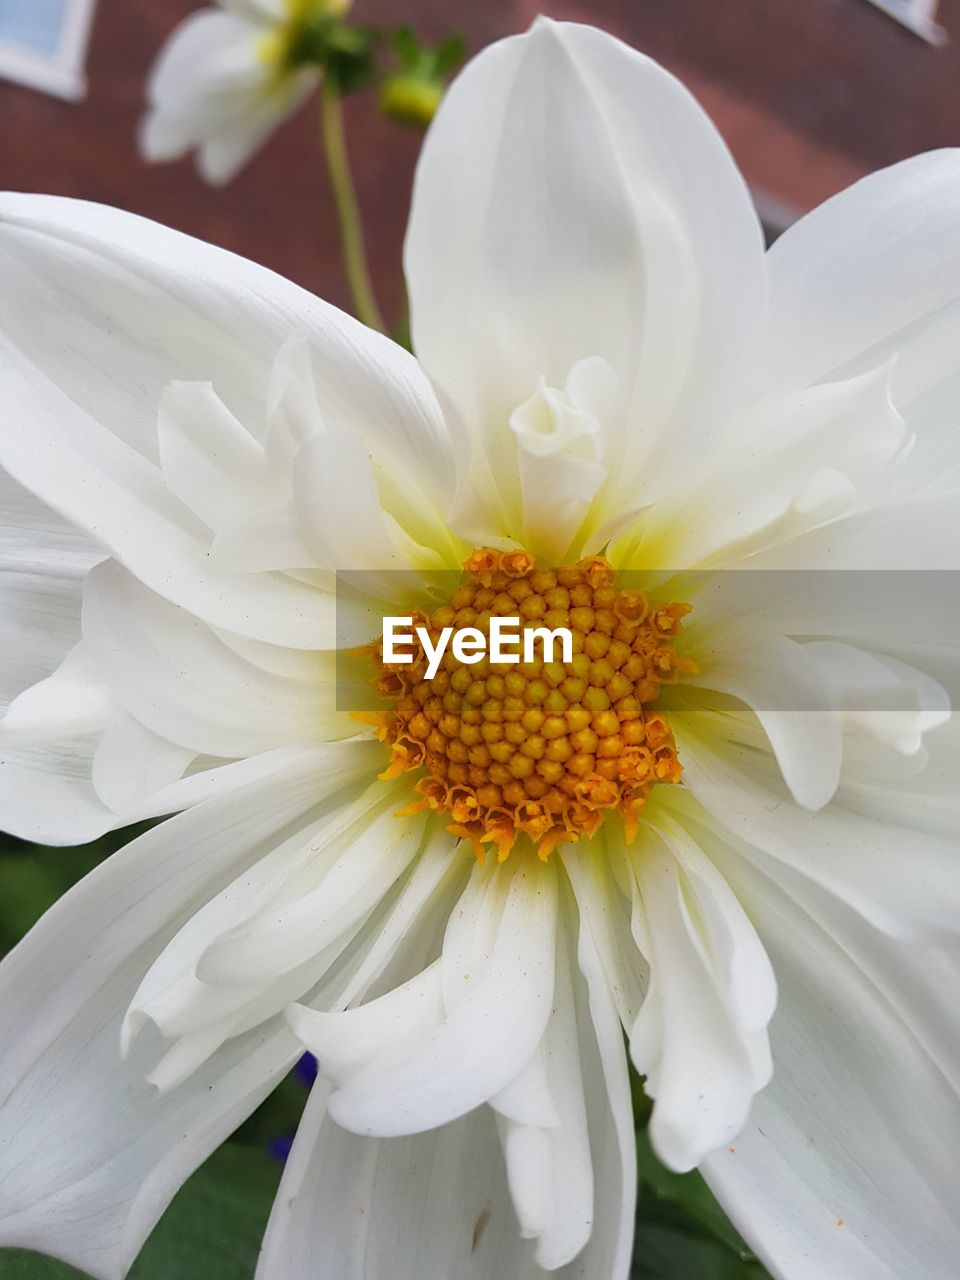 flower, petal, white color, fragility, flower head, beauty in nature, freshness, nature, growth, close-up, day, pollen, no people, outdoors, blooming